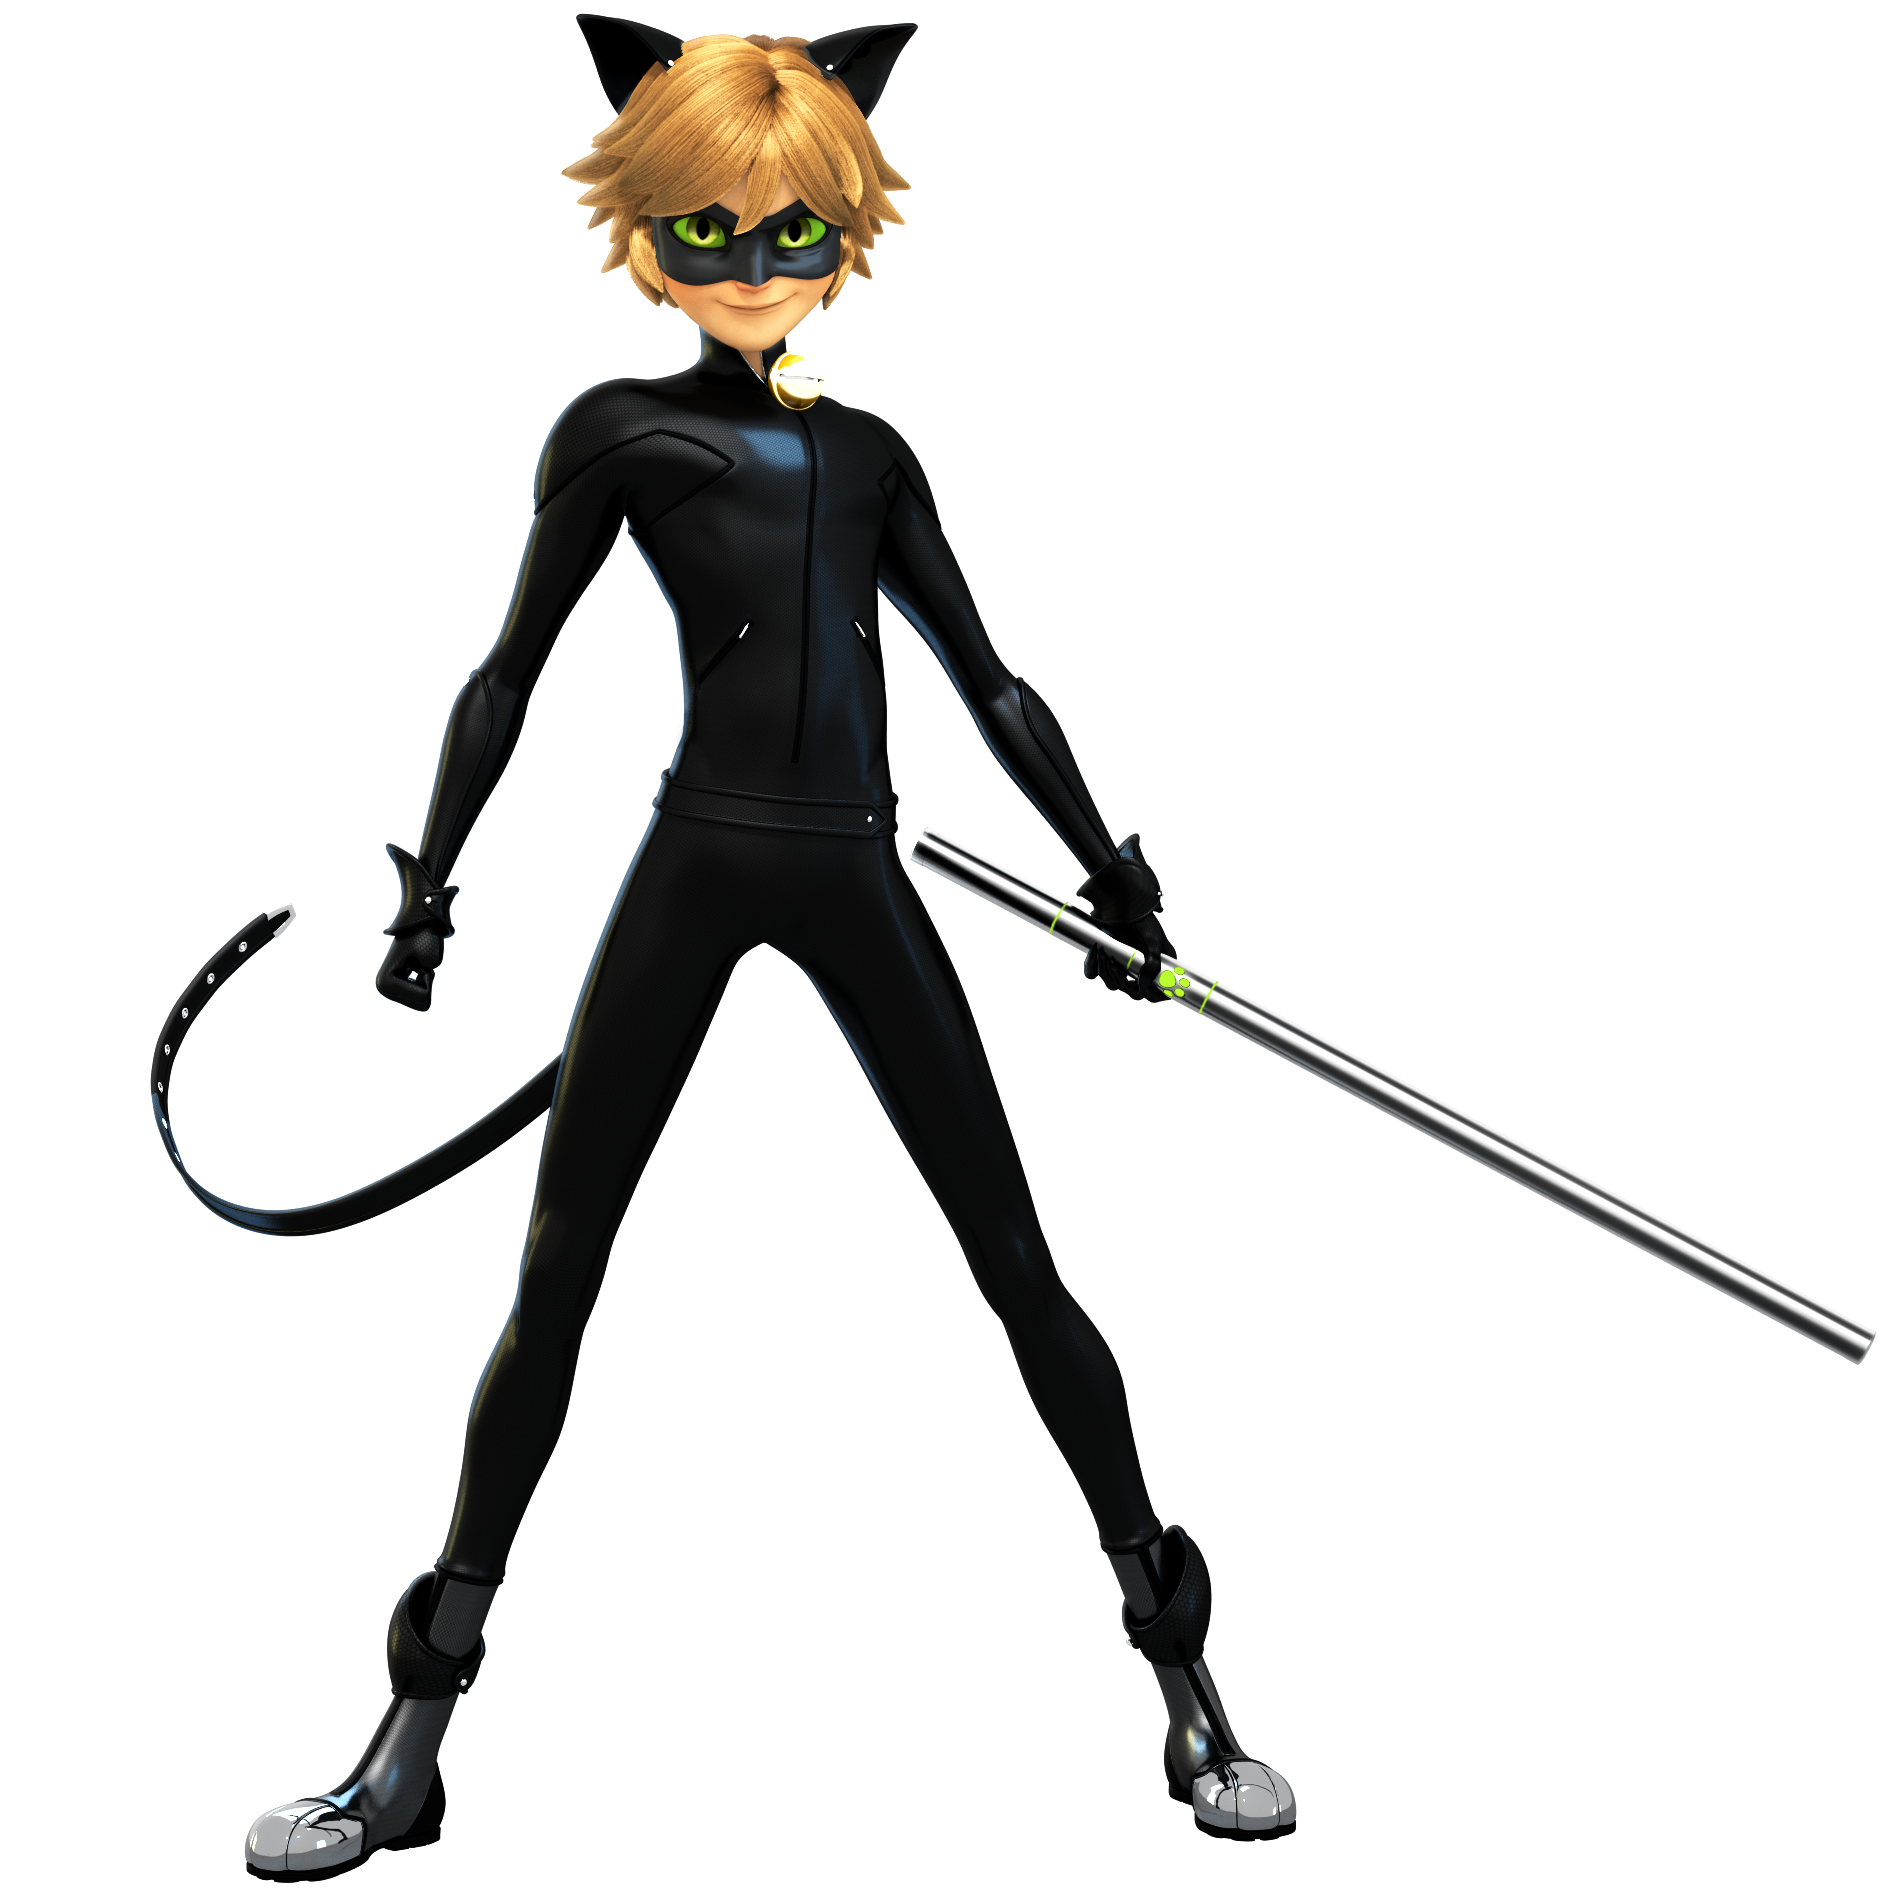 Cat Noir (M.U.G.E.N Trilogy)